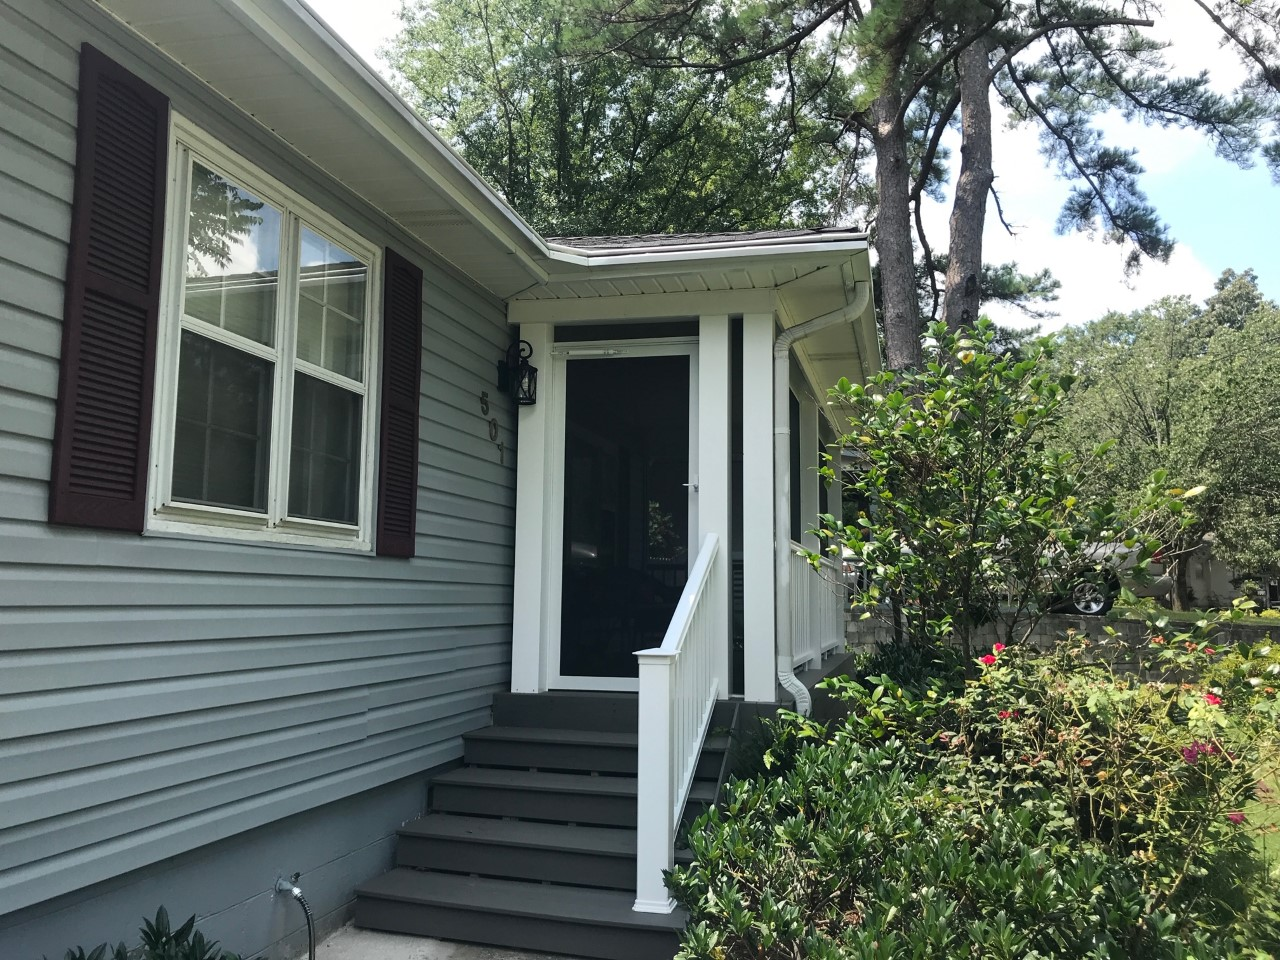 Exterior-view-of-front-entry-screened-porch